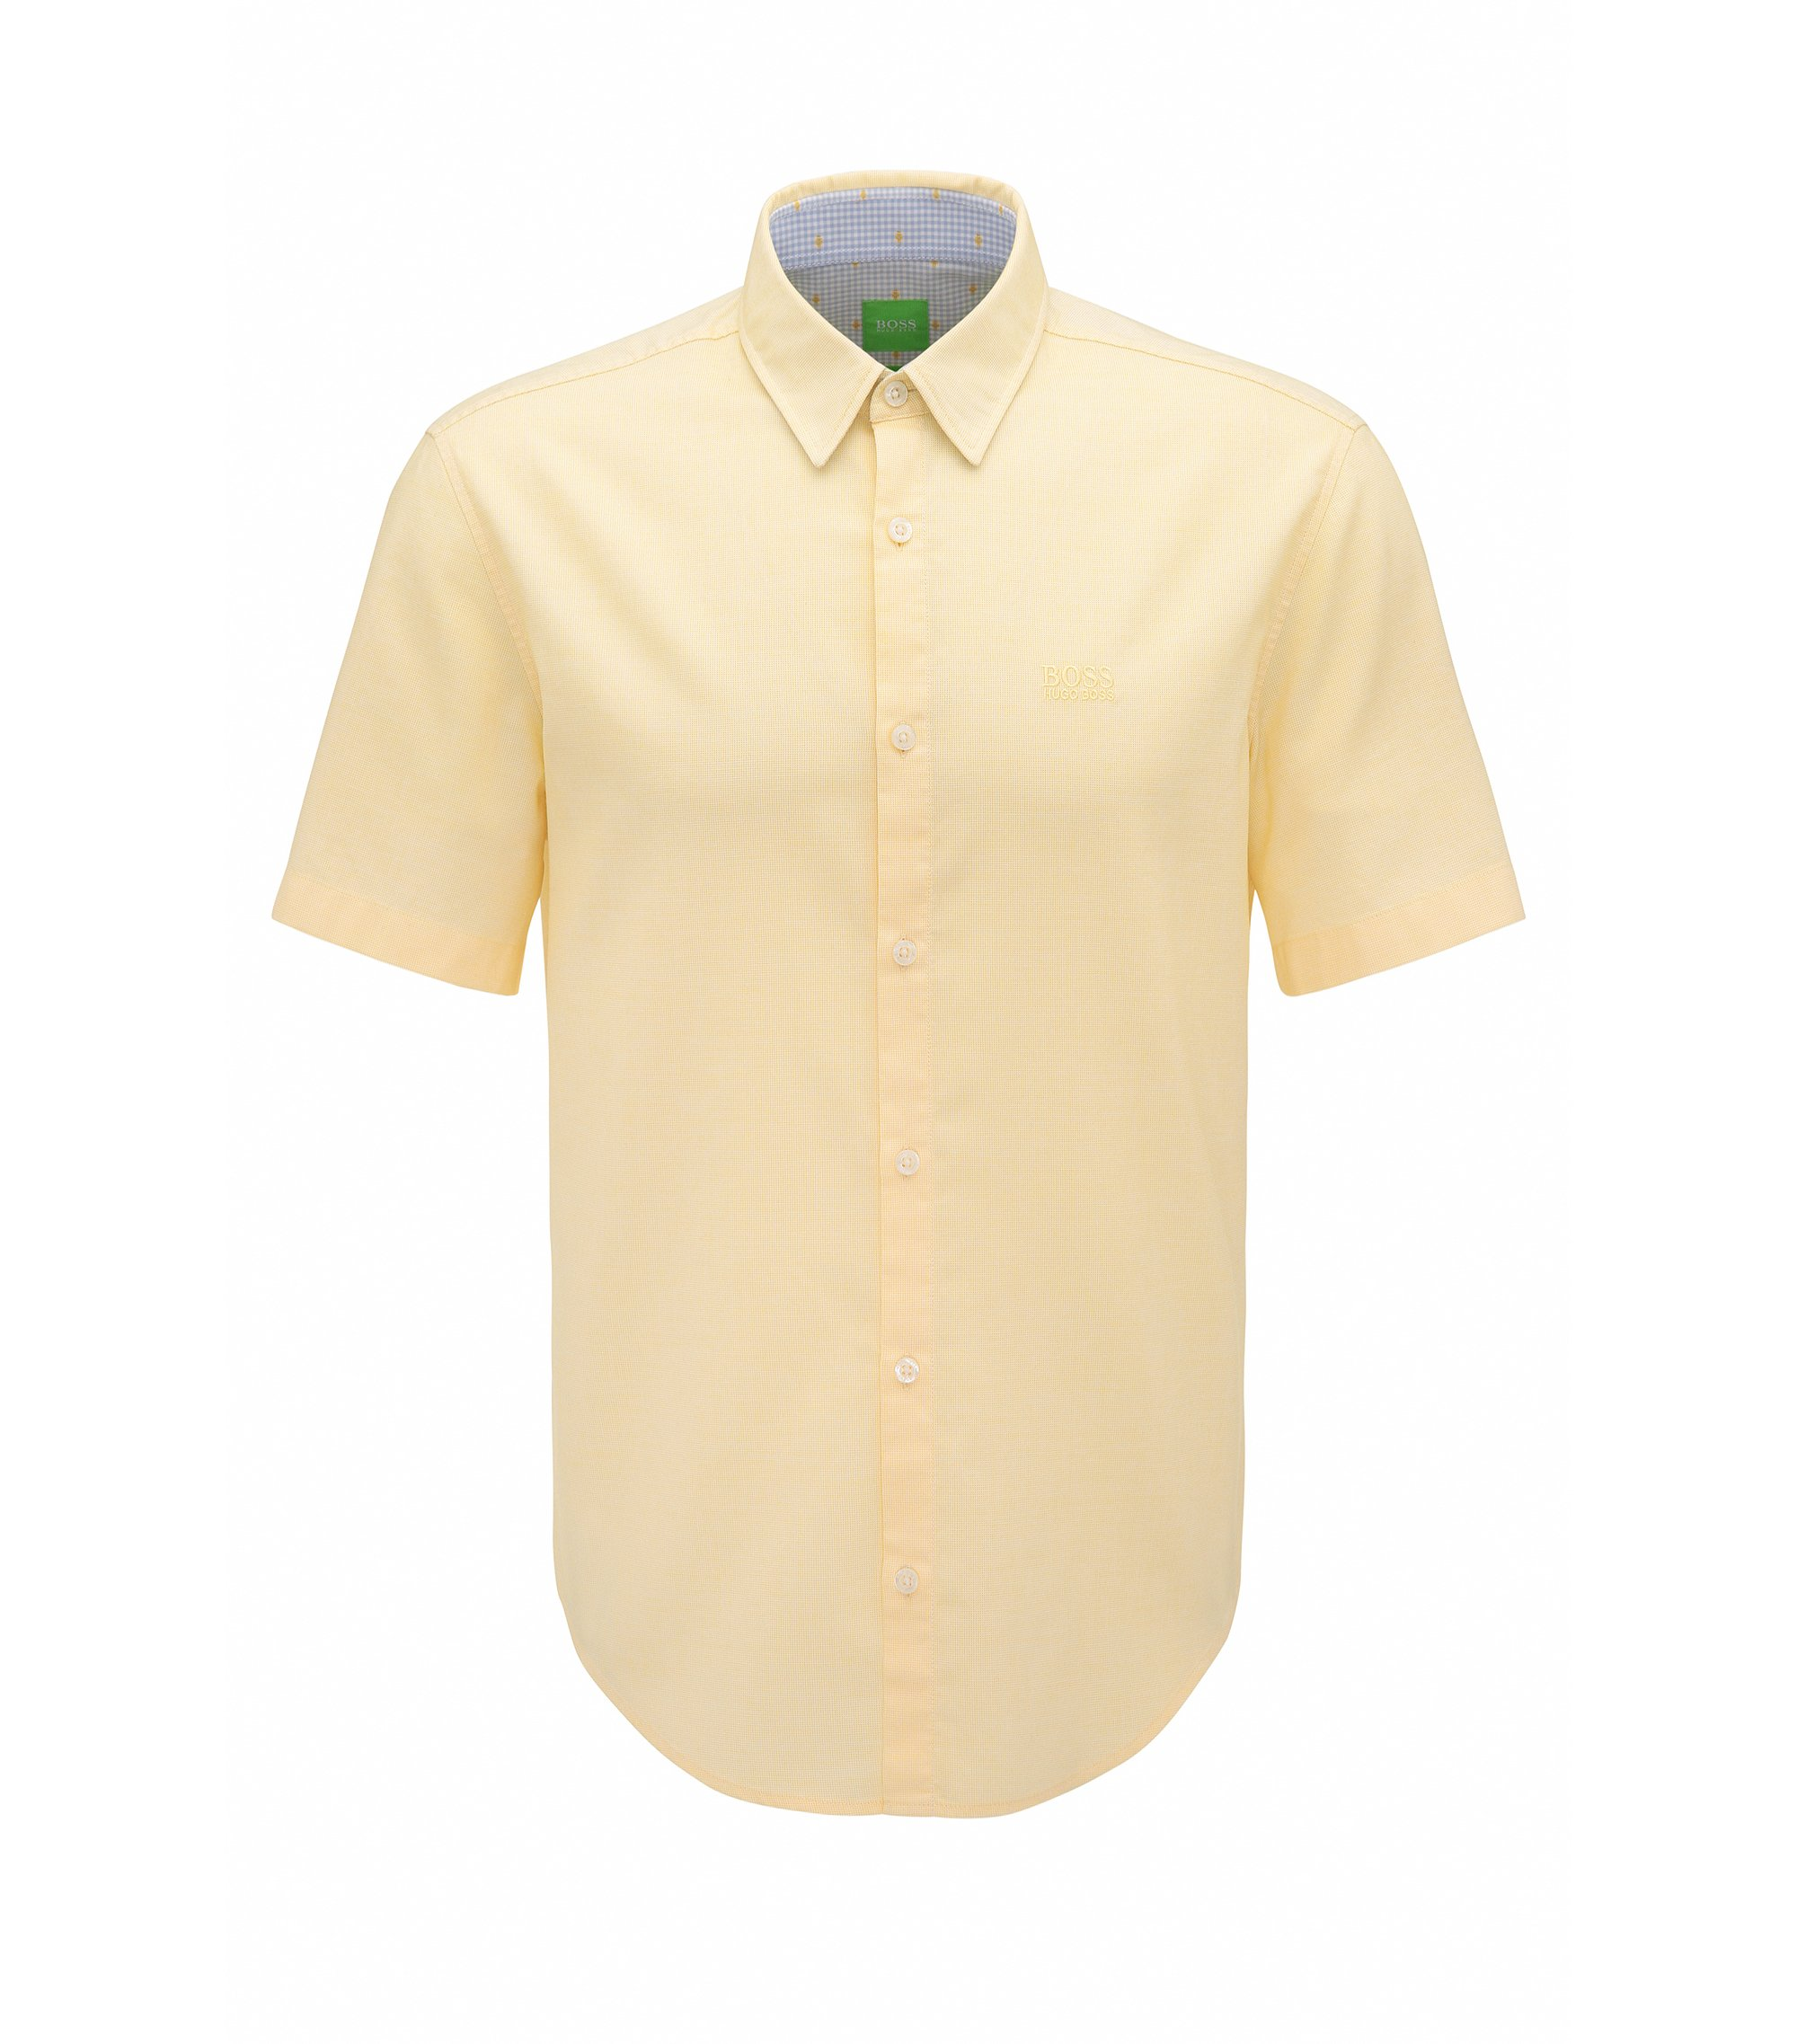 Cotton Button Down Shirt, Regular Fit | C-Busterino, Yellow